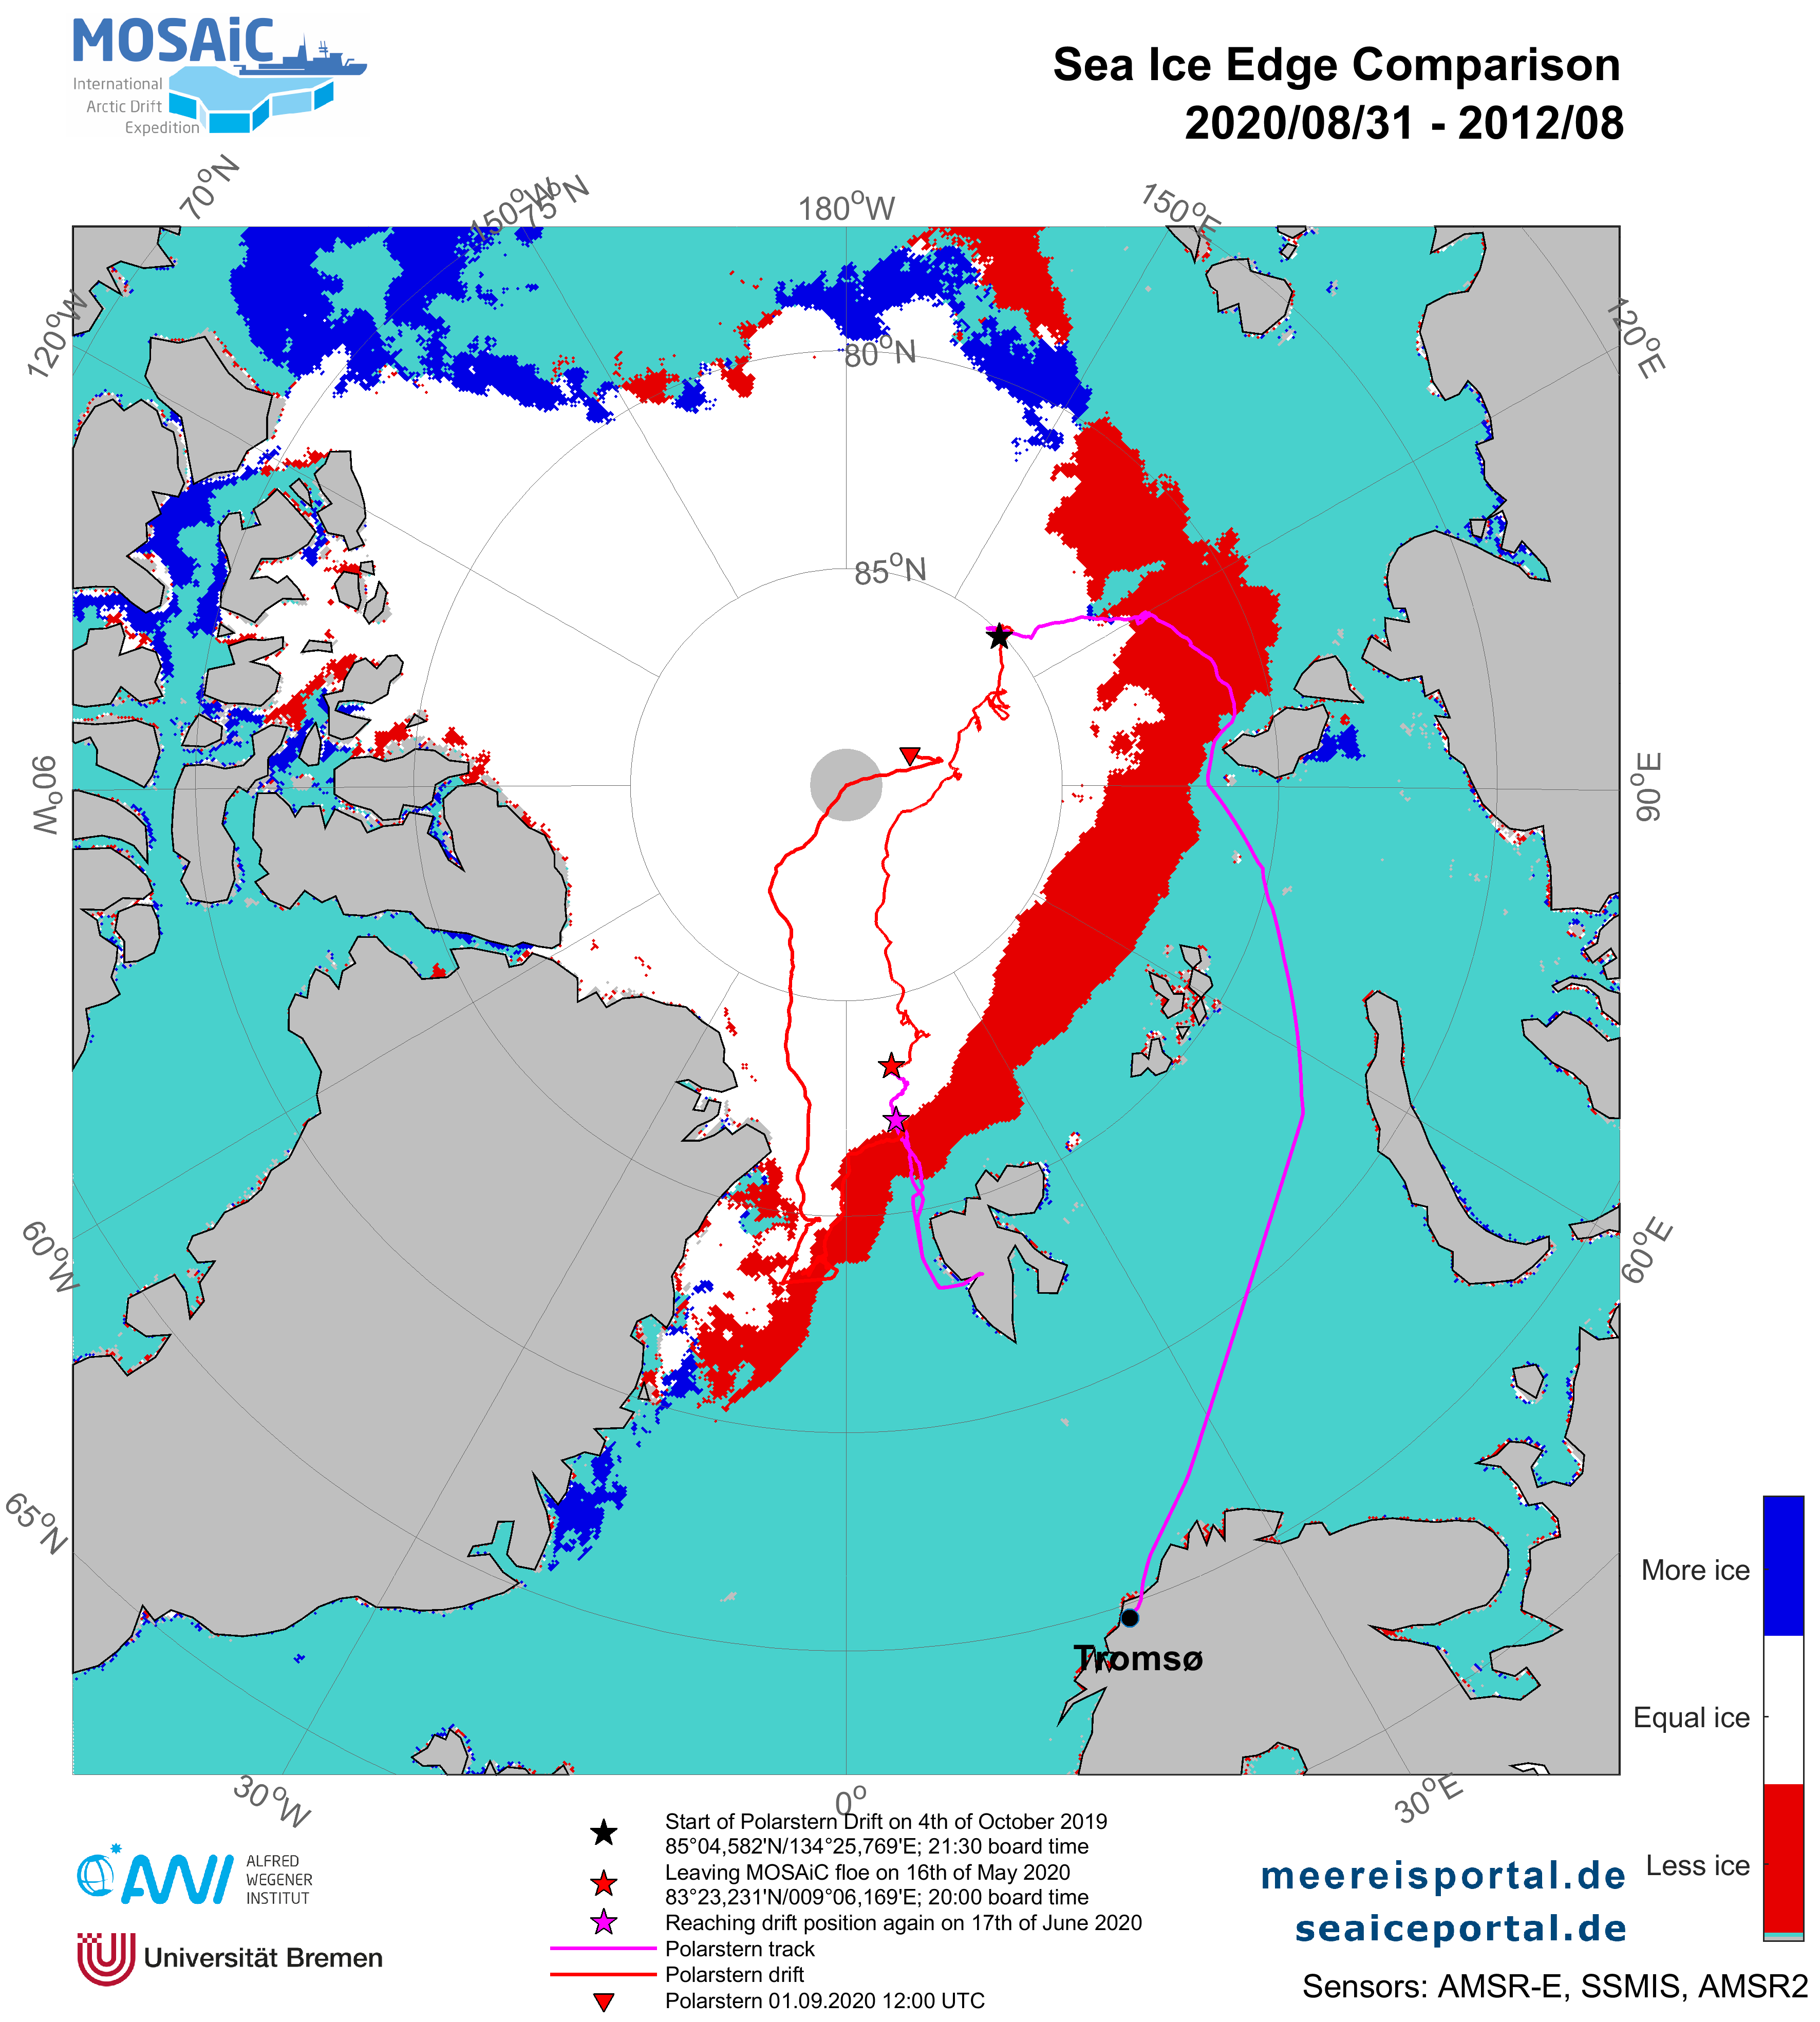 arctic map of the sea ice edge and cruise track of Polarstern during the MOSAiC expedition